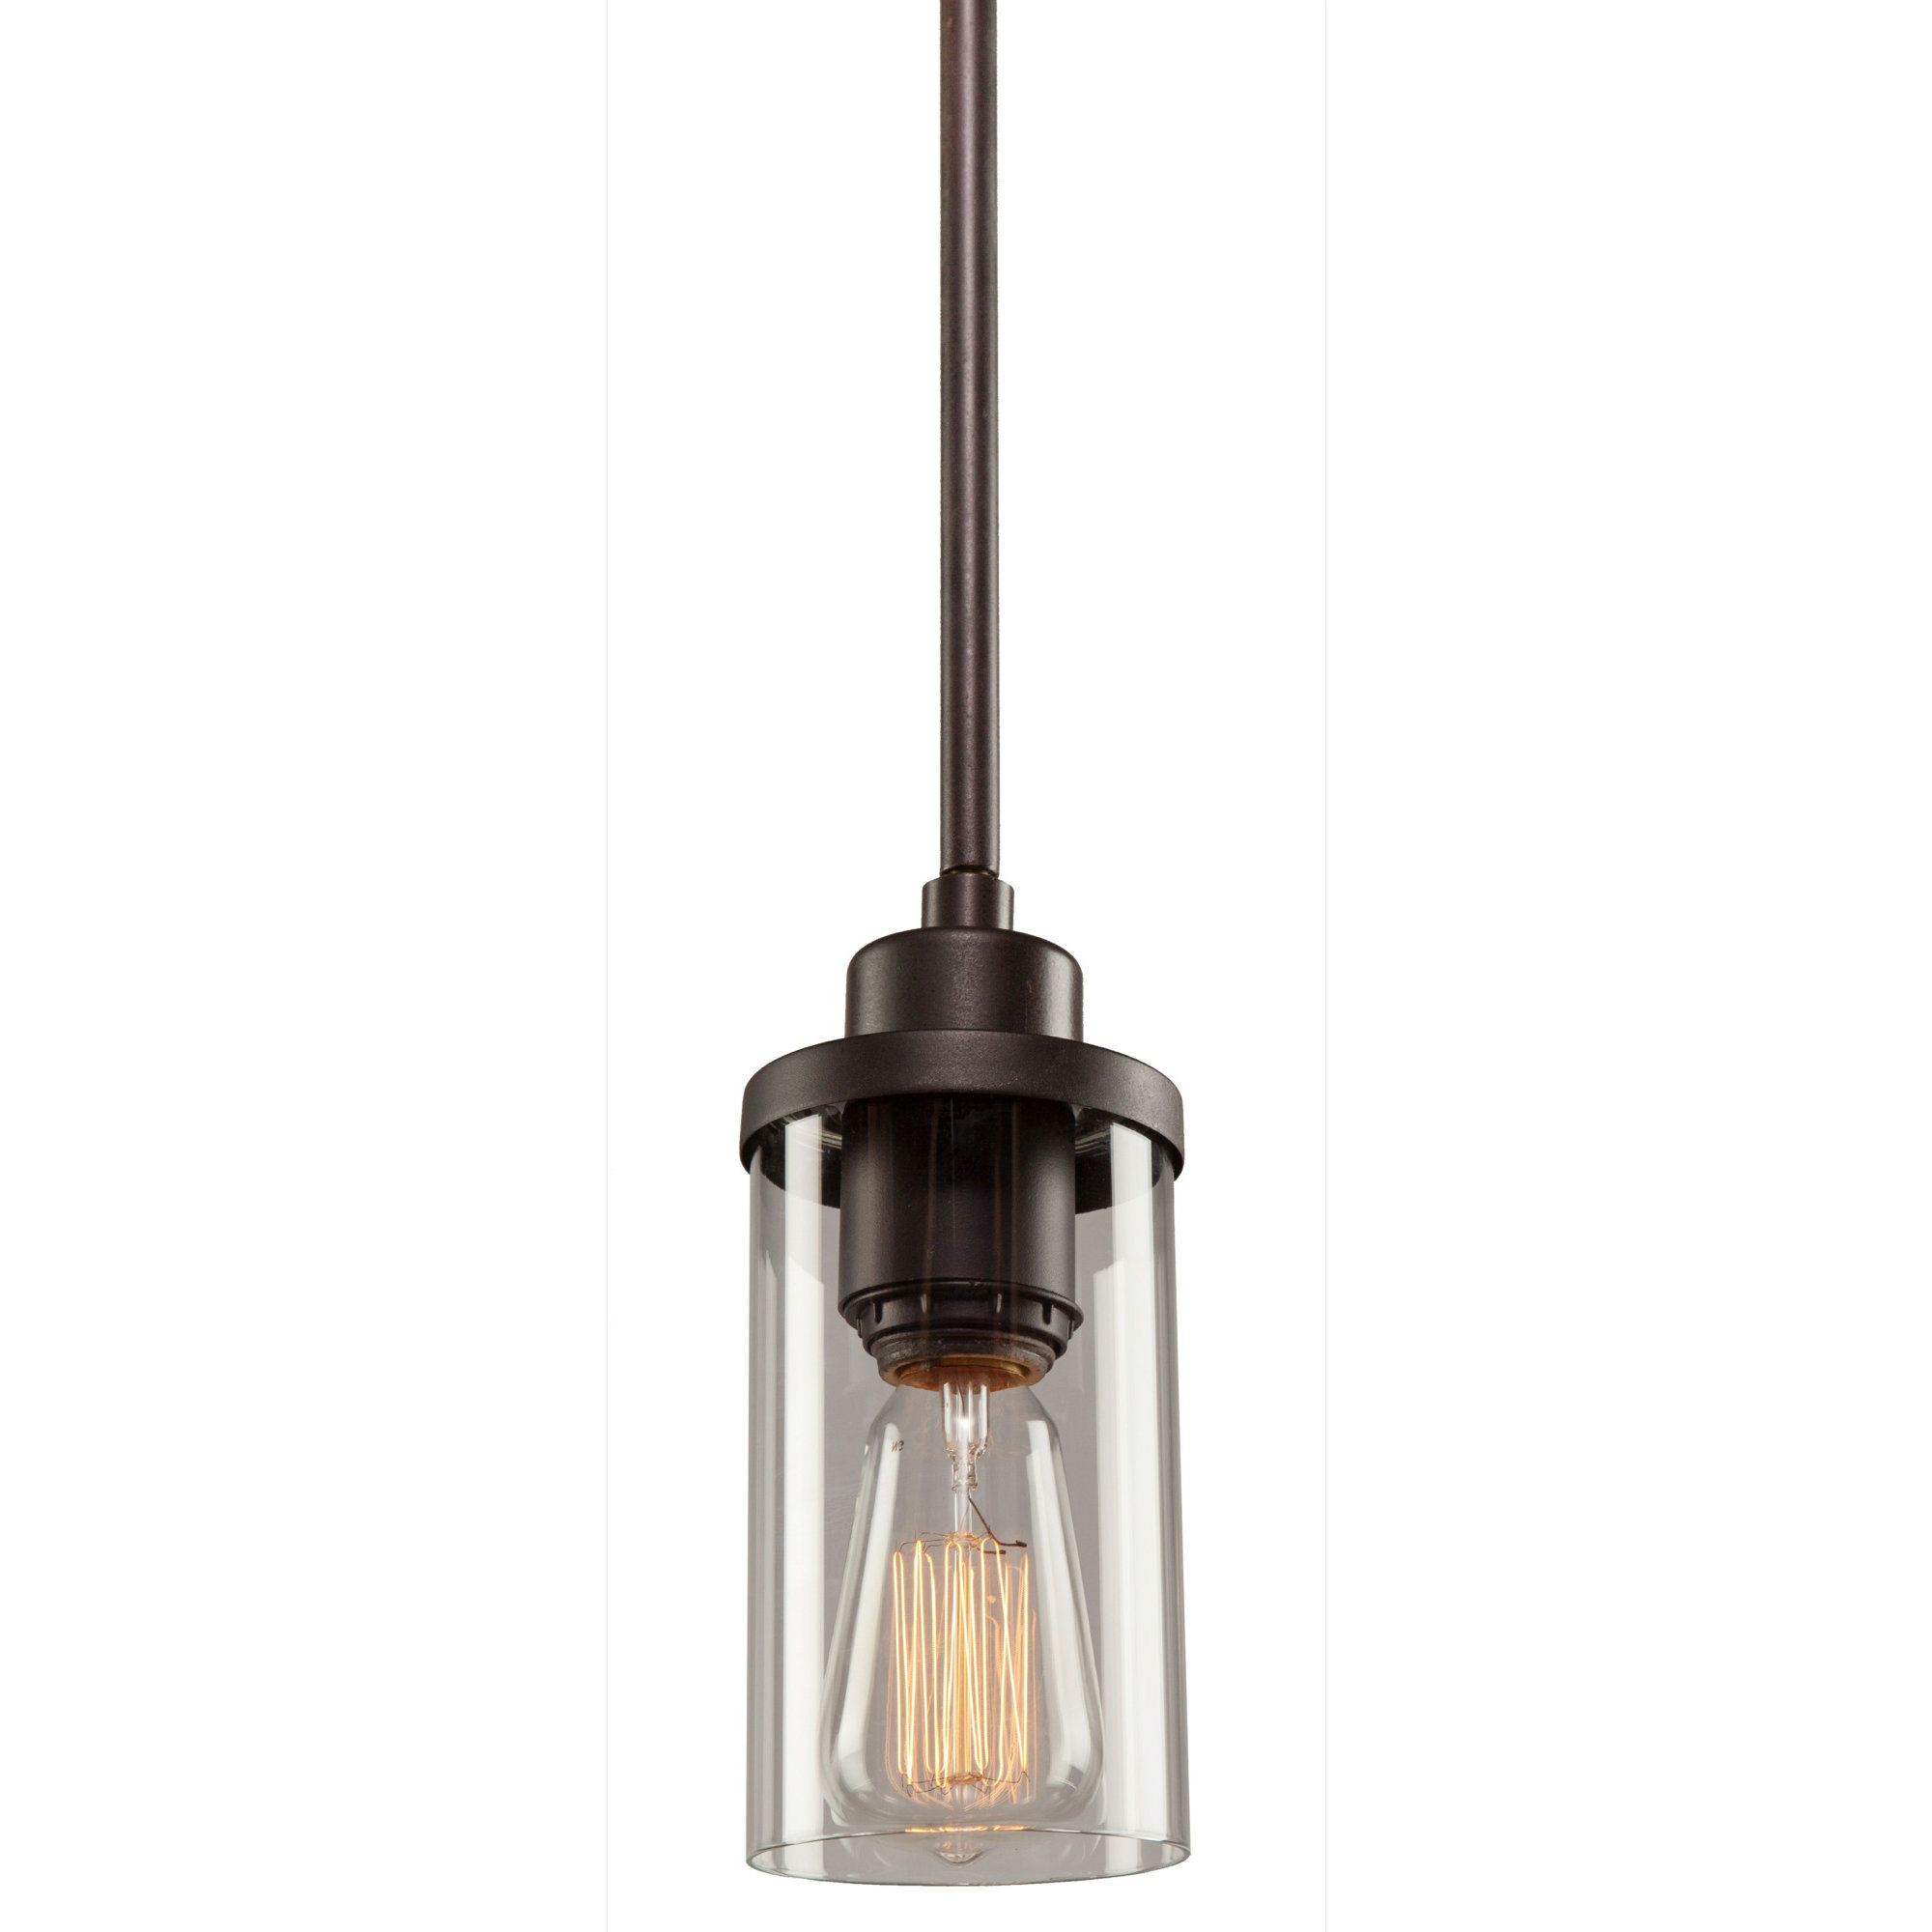 Florine 1 Light Single Cylinder Pendant In Favorite Angelina 1 Light Single Cylinder Pendants (View 6 of 25)